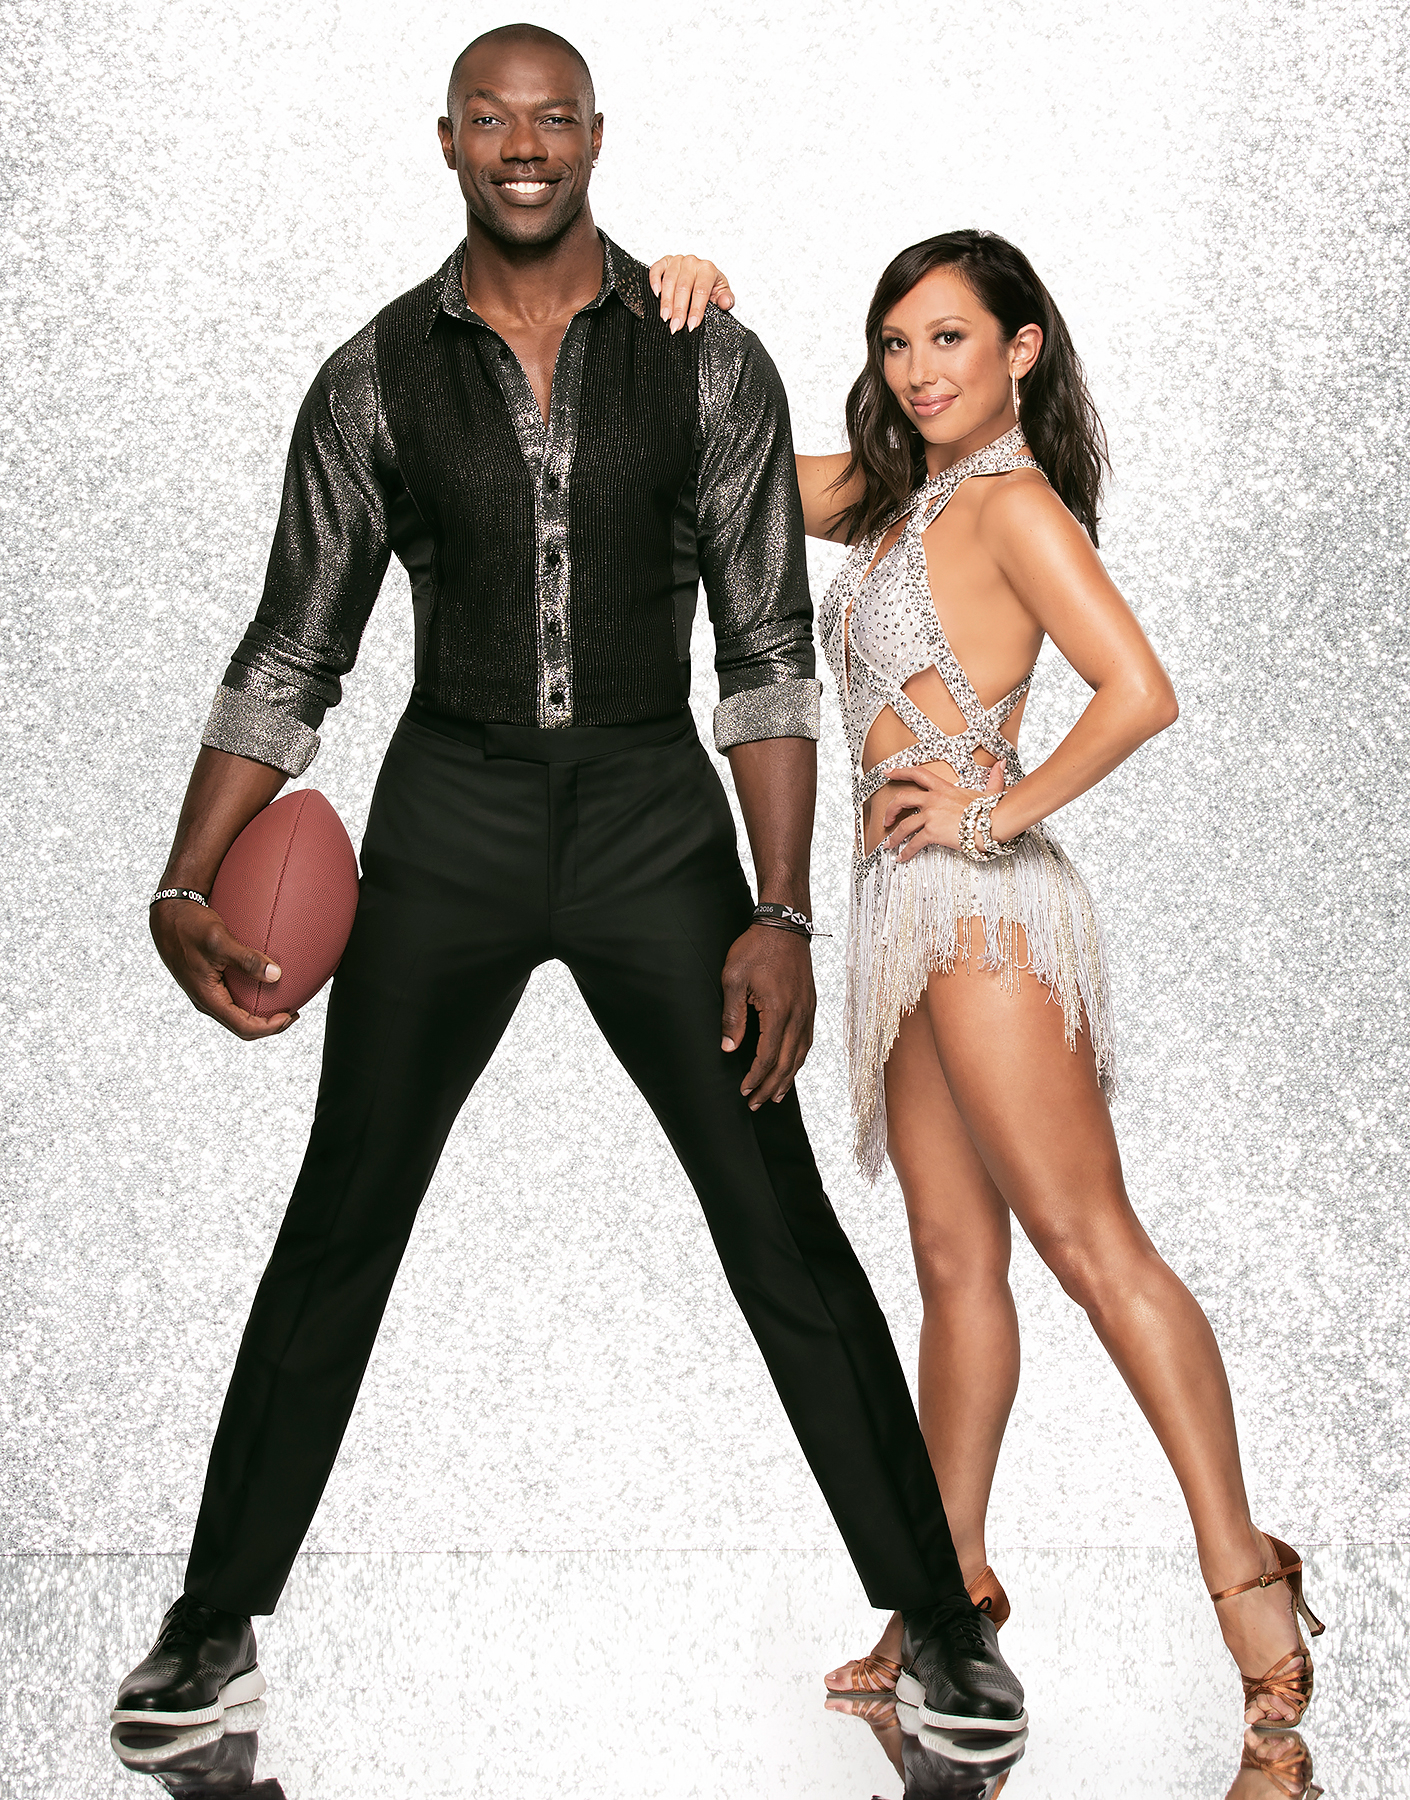 Terrell Owens and Cheryl Burke